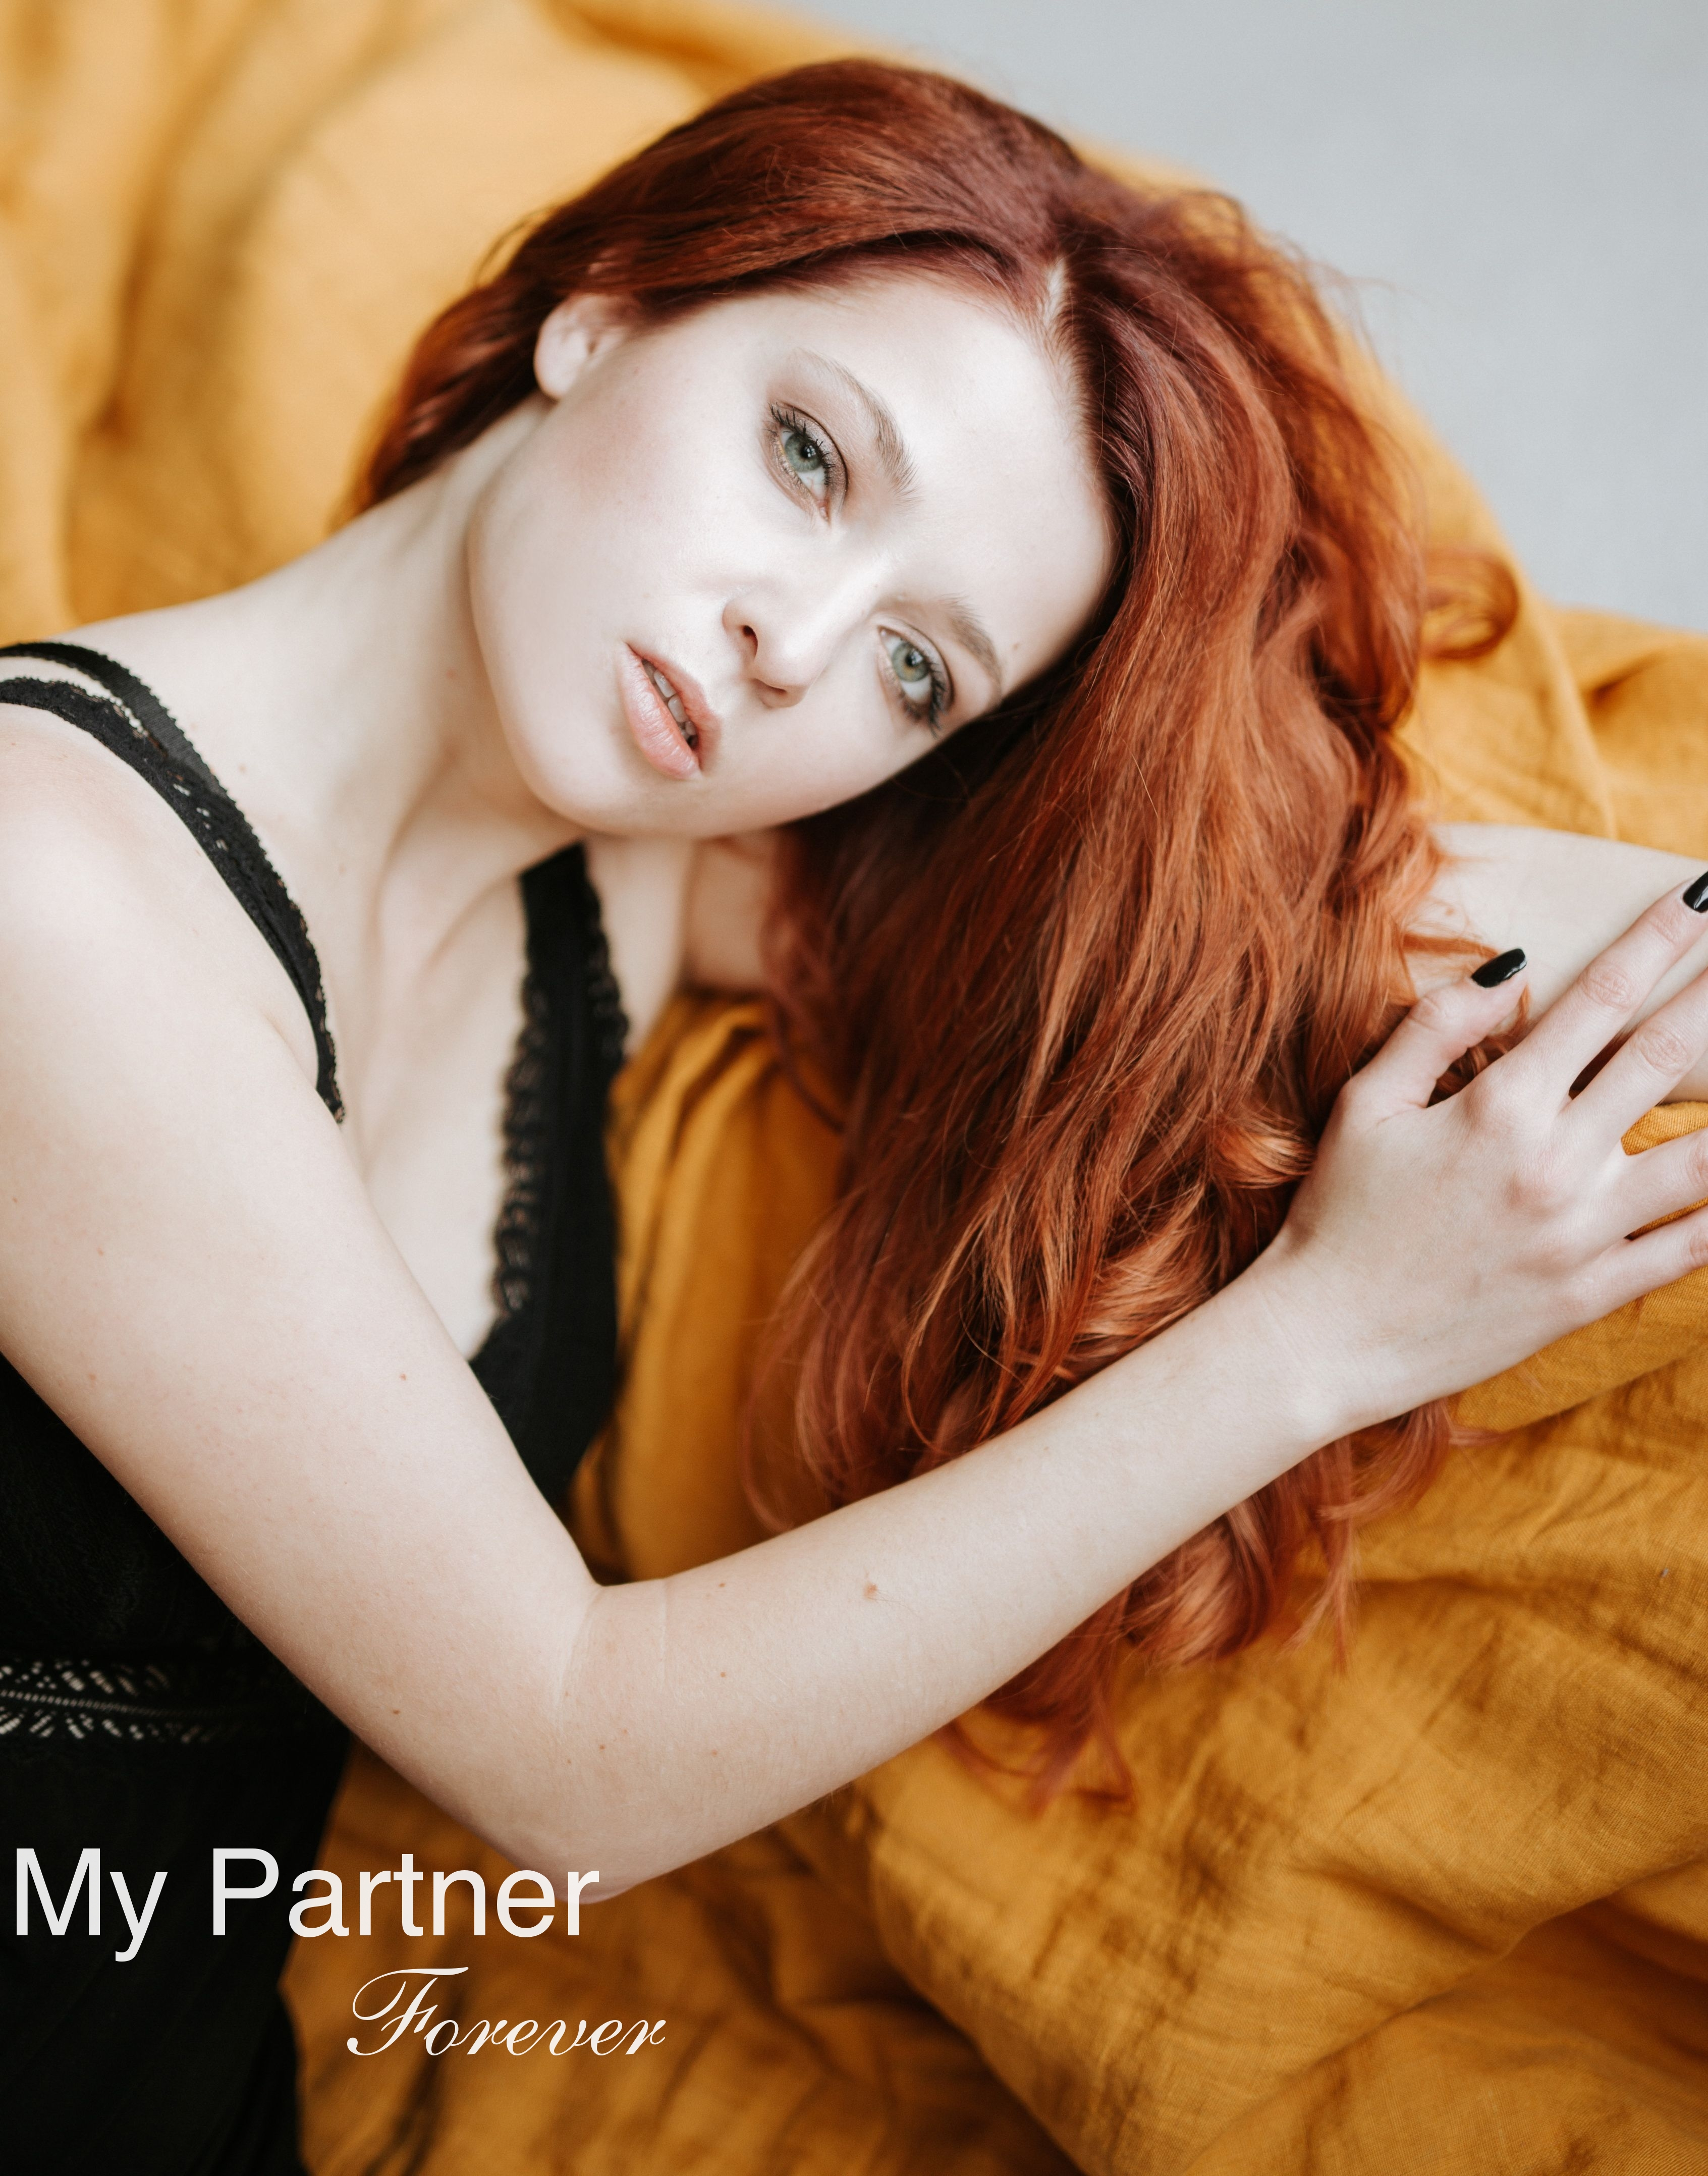 Dating Site to Meet Mariya from Grodno, Belarus